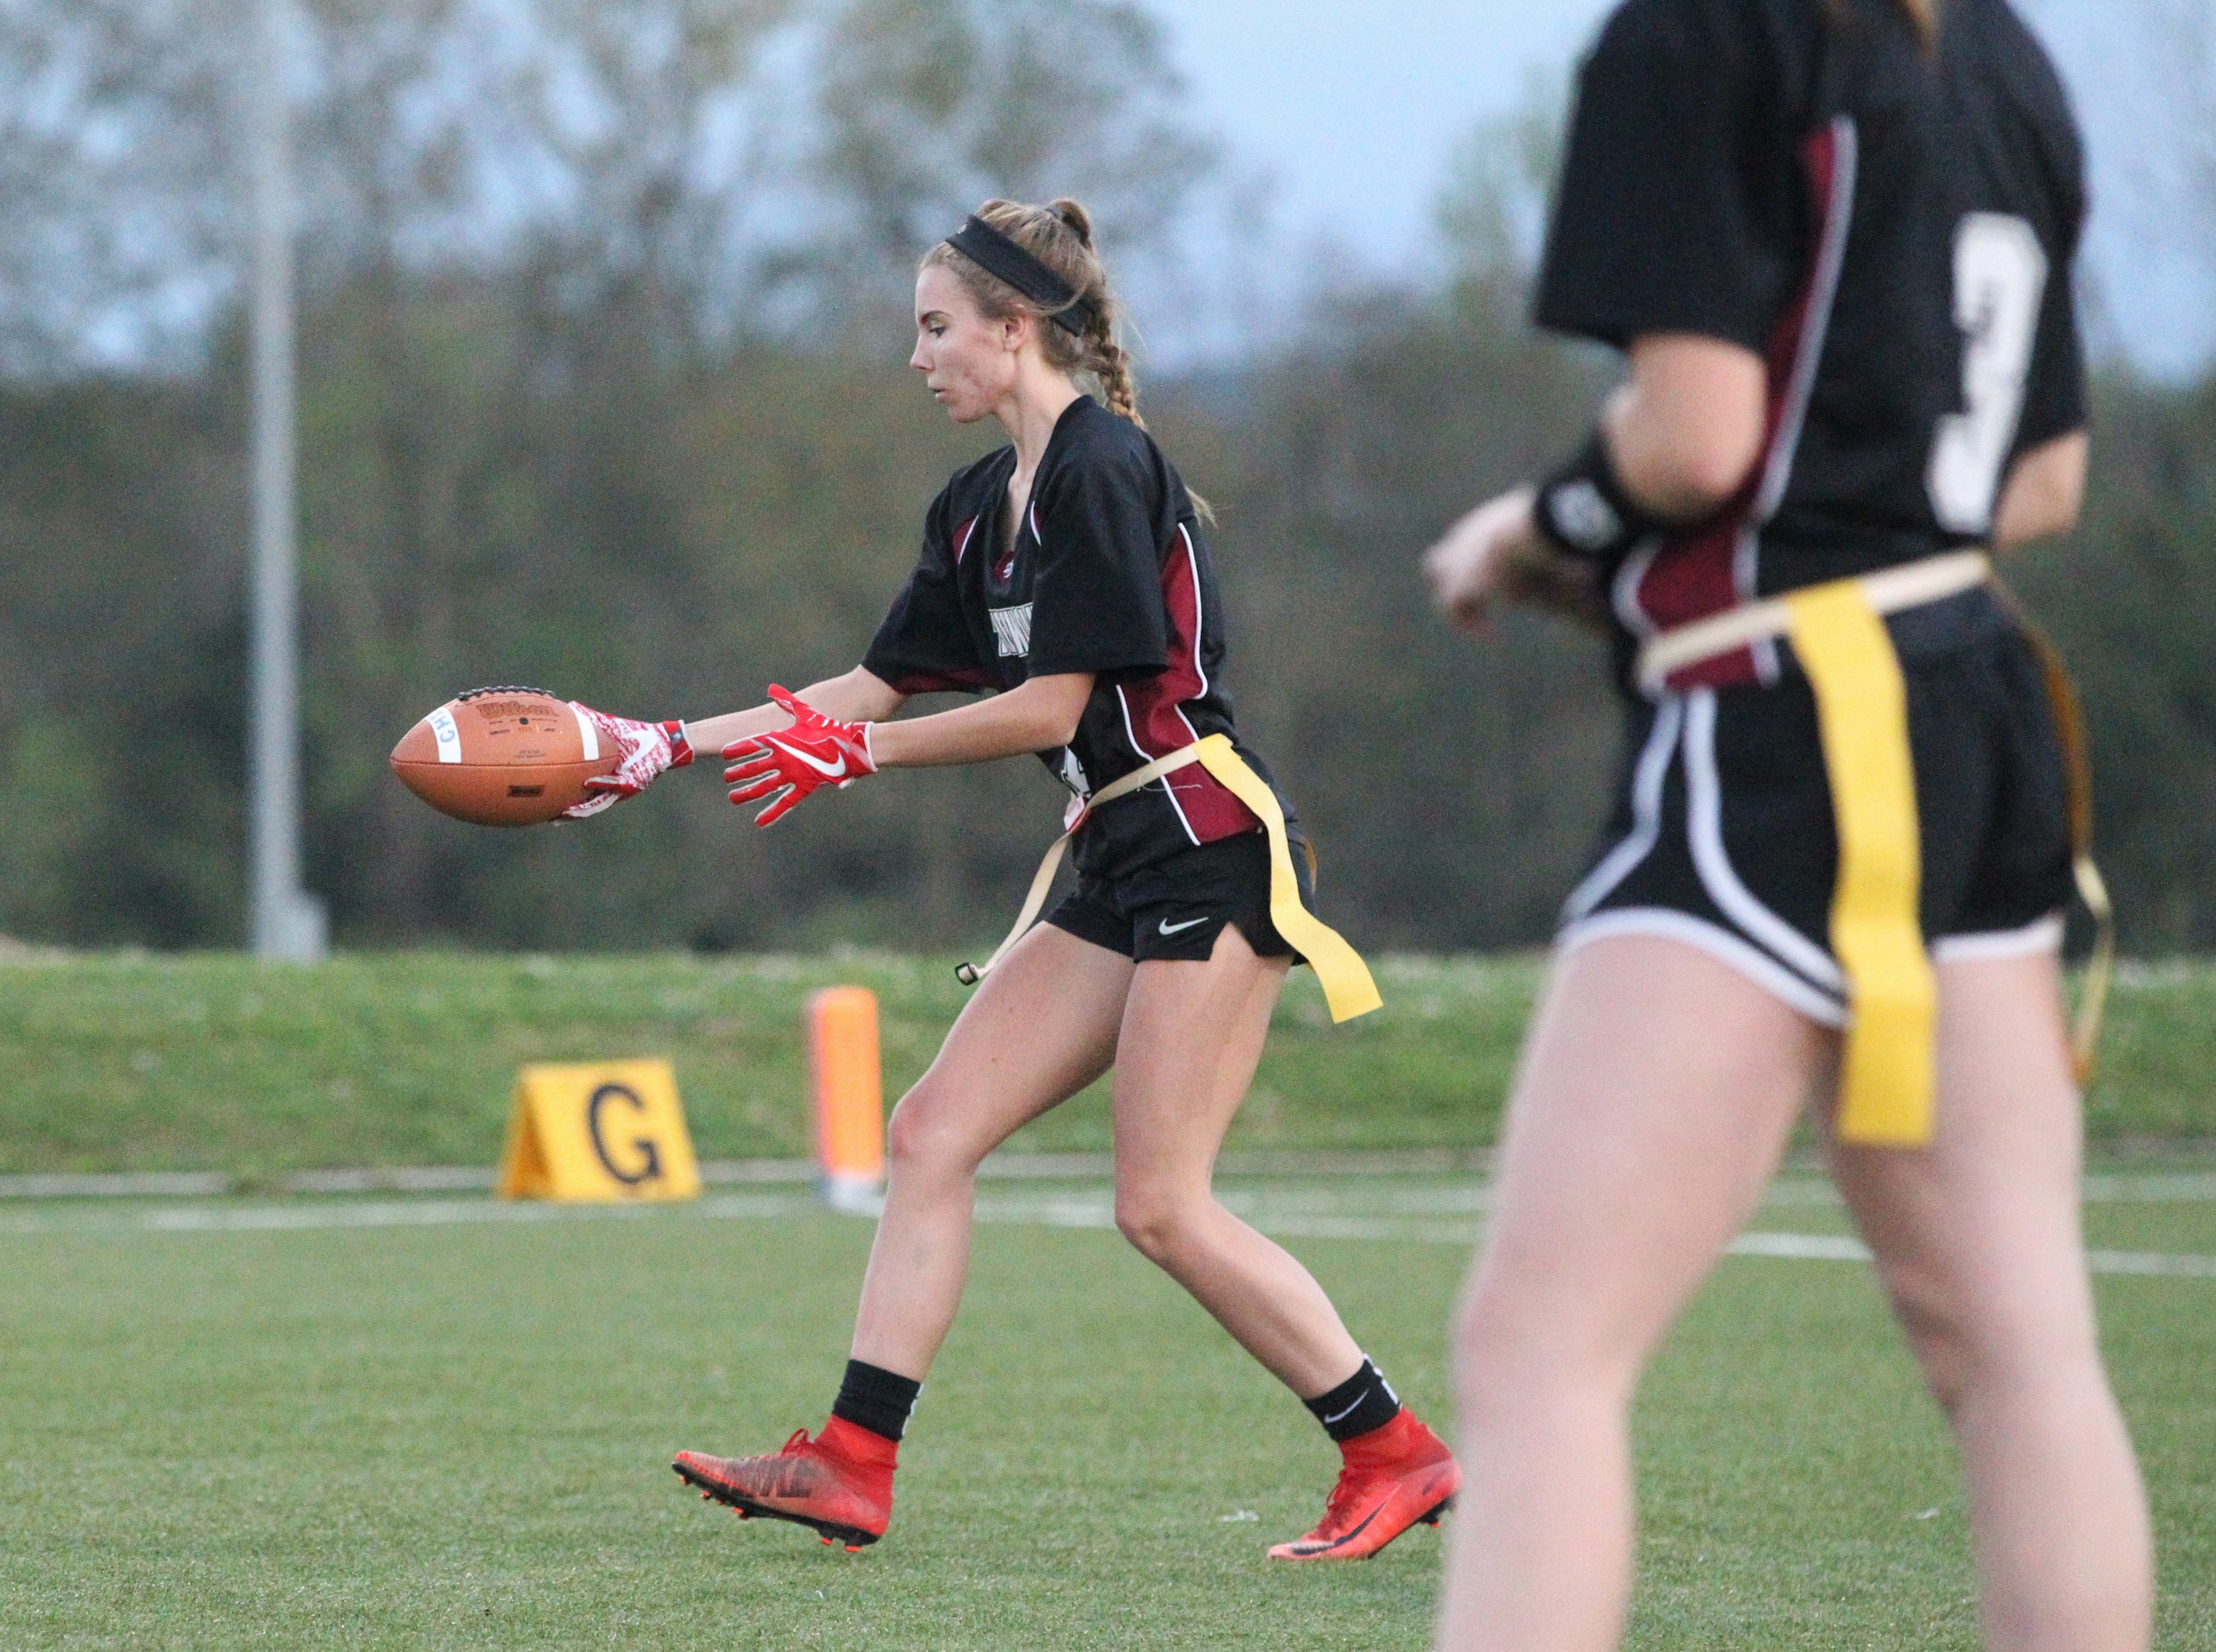 Chiles and Rickards play during the 2019 flag football preseason classic at Florida A&M's intramural turf fields on Feb. 27, 2019.